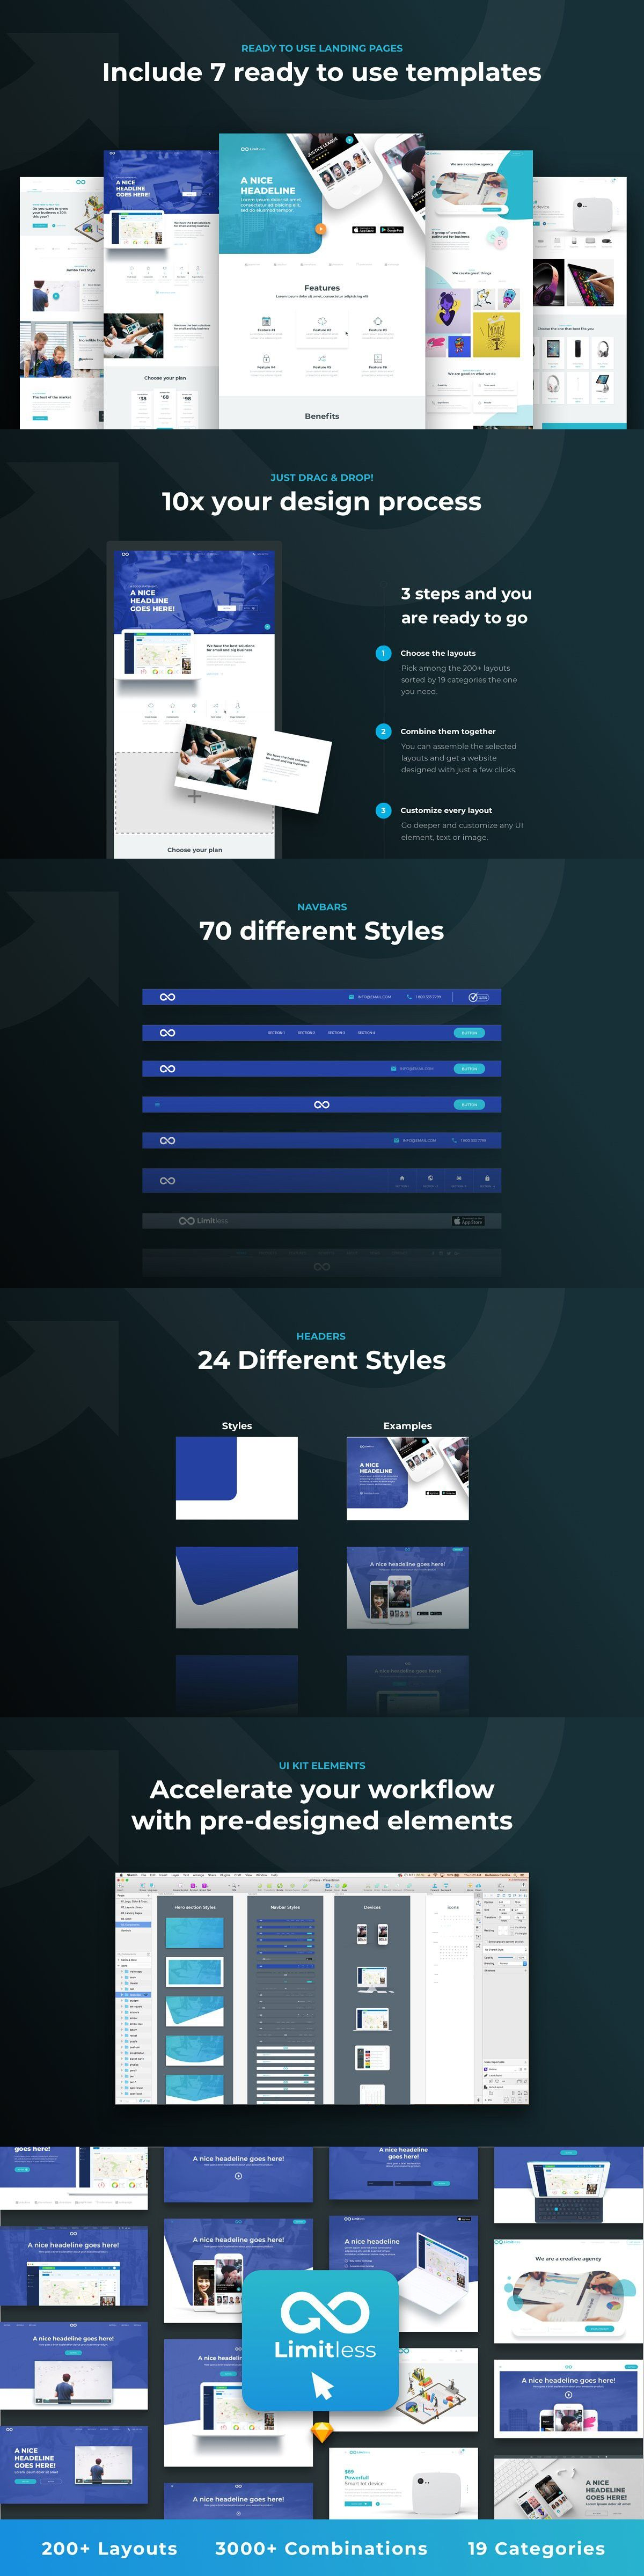 Limitless For Web Web Design Projects Web Design Limitless